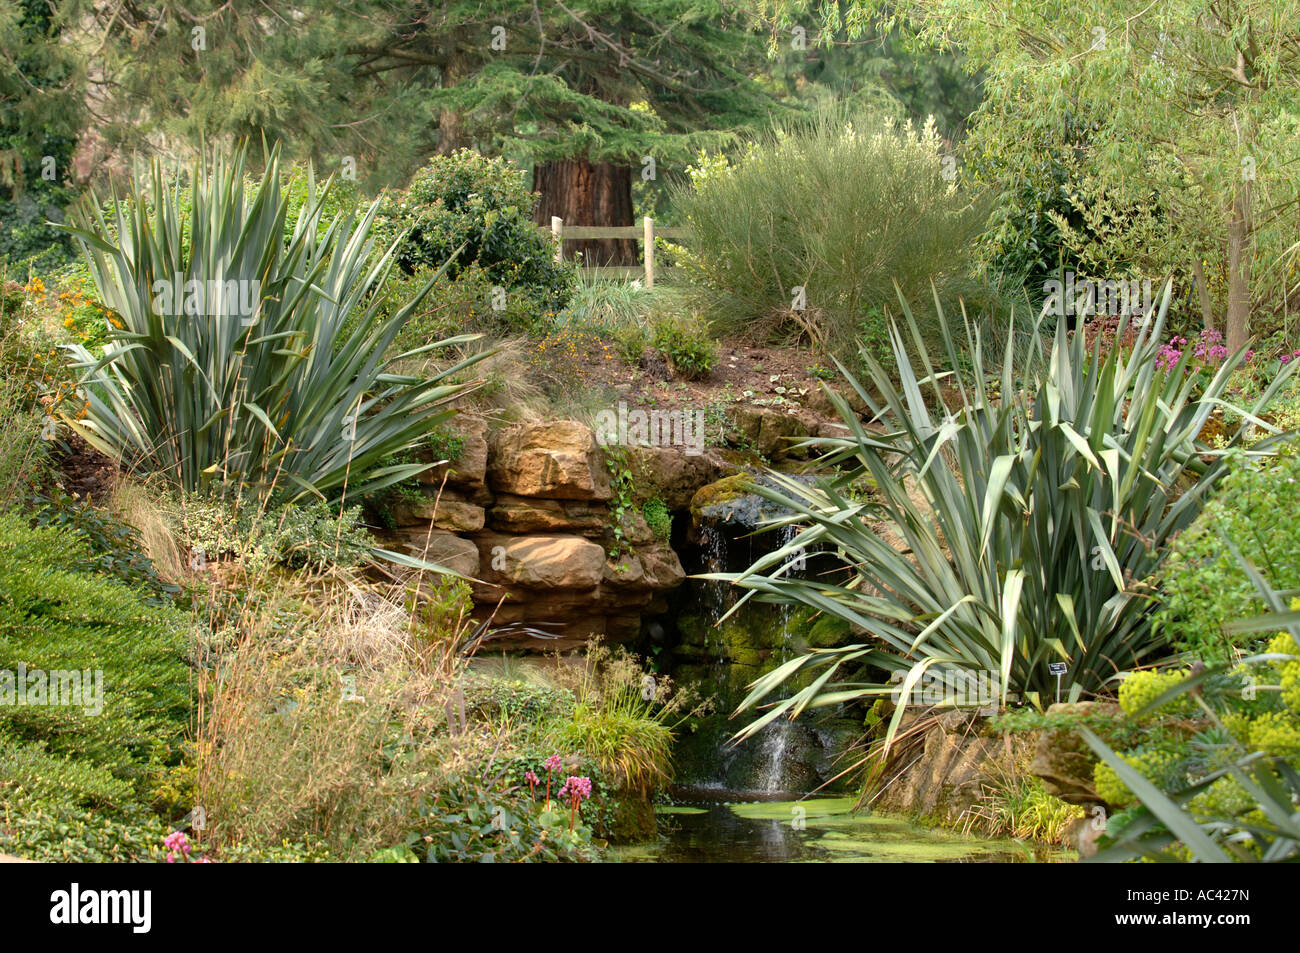 SPECIMENS OF NEW ZEALAND FLAX OR PHORMIUM TENAX FLANK A WATER FEATURE AT DEWSTOW GARDENS AND GROTTOES - Stock Image